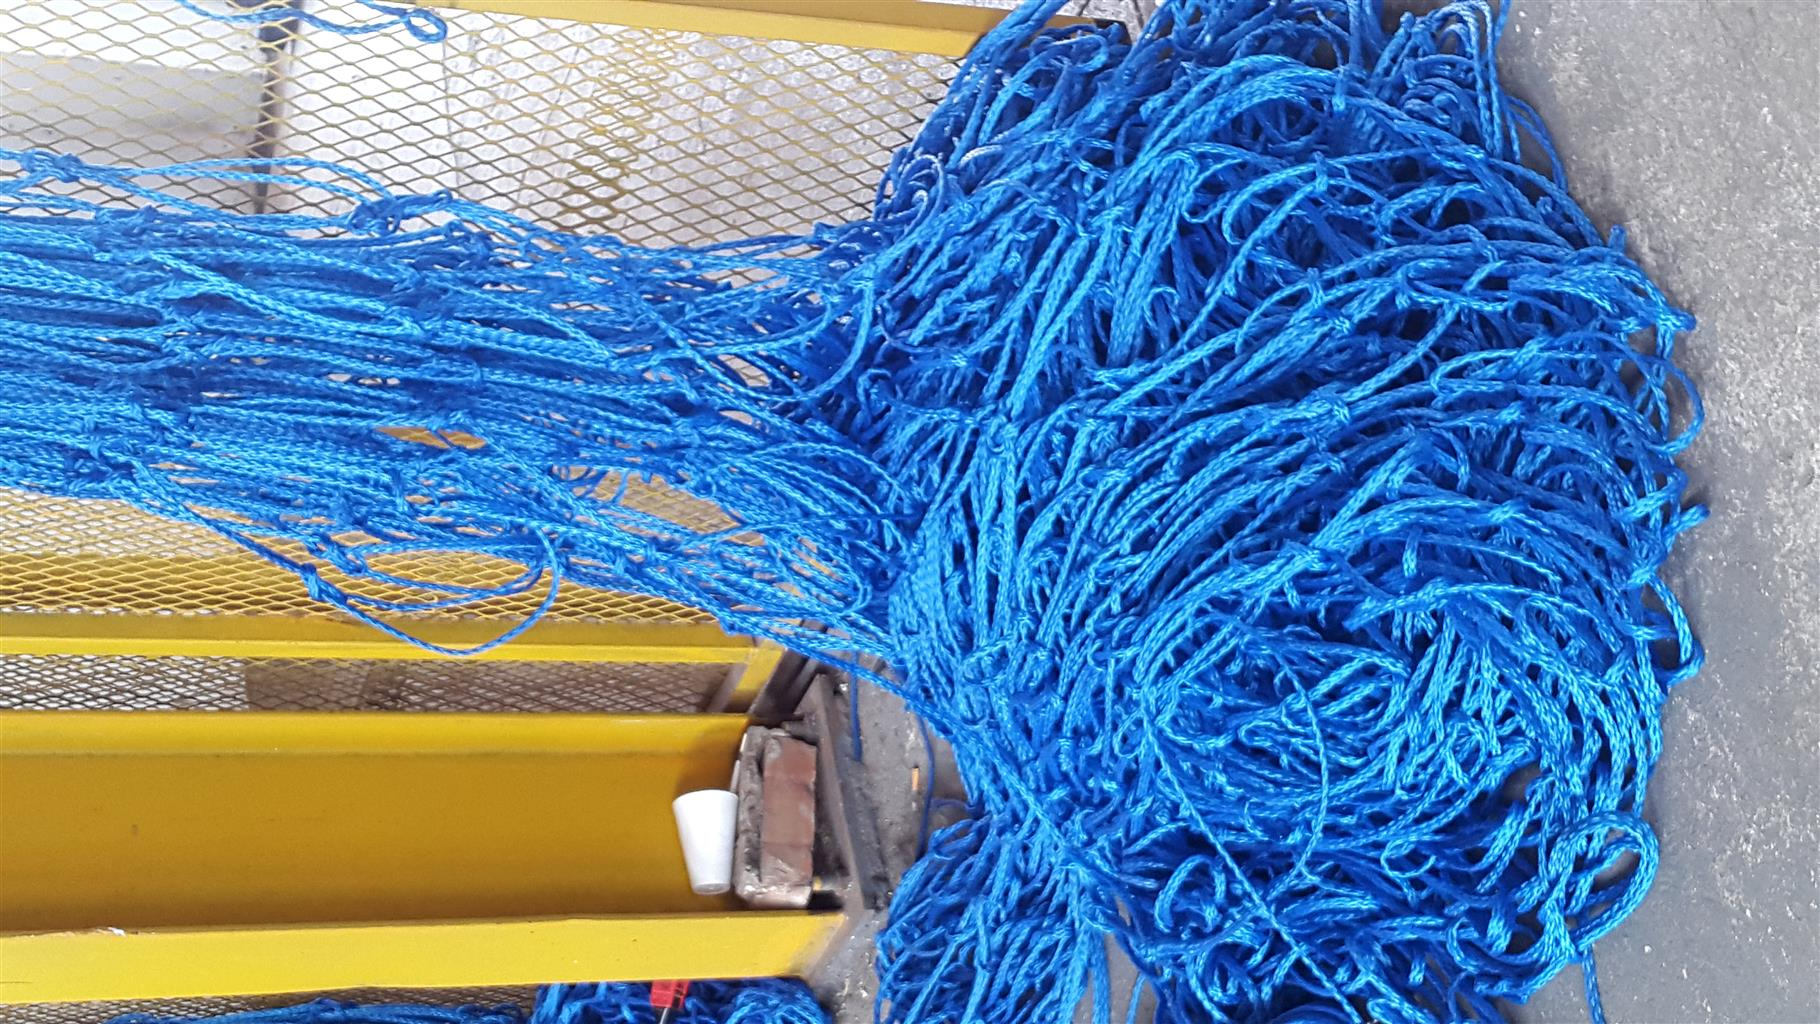 9m x9m & 16m x 9m cargo nets for sale